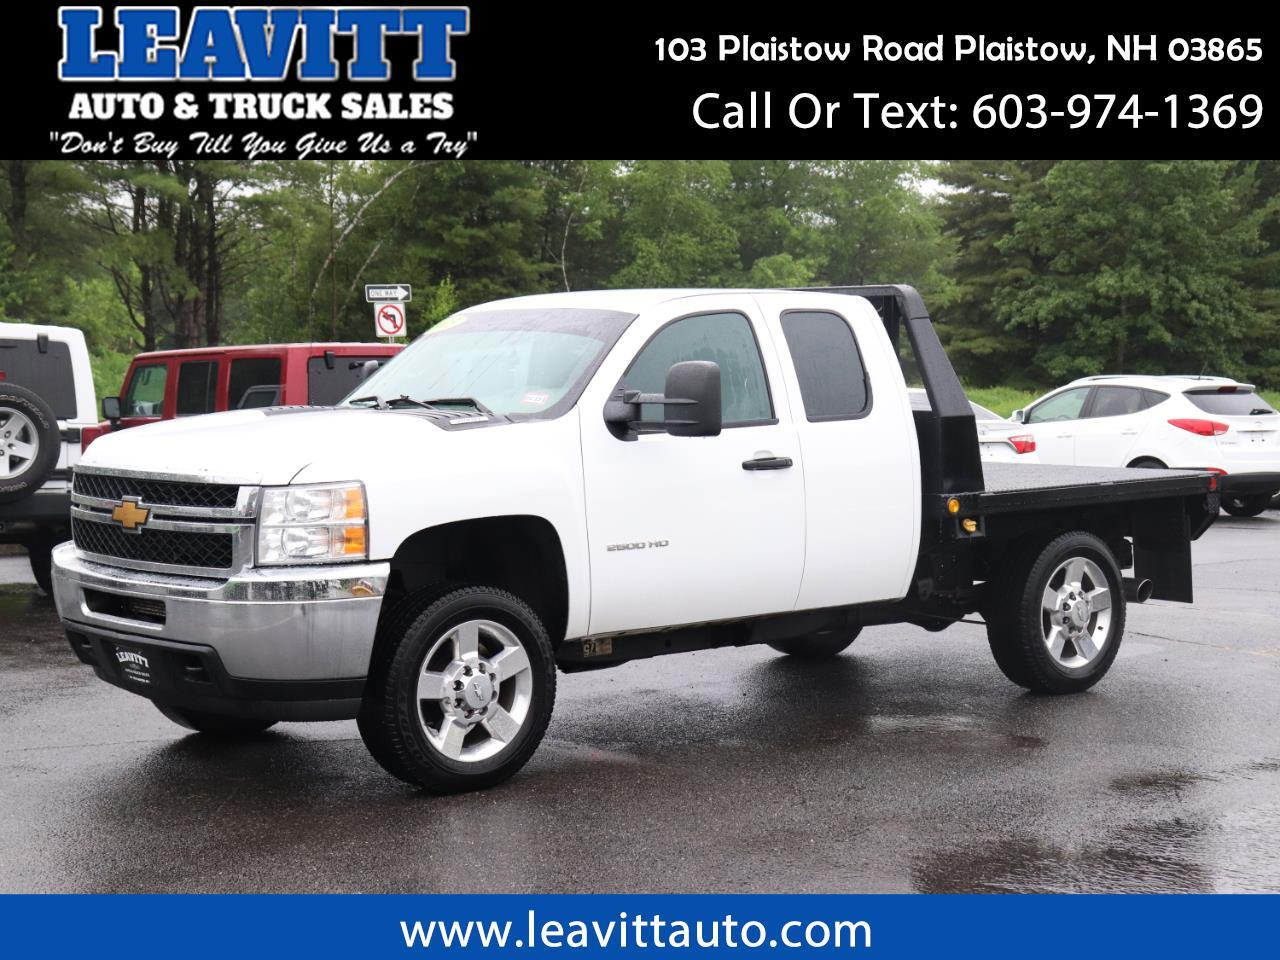 2013 Chevrolet Silverado 2500HD FLAT BED X-CAB DENALI WHEELS!!